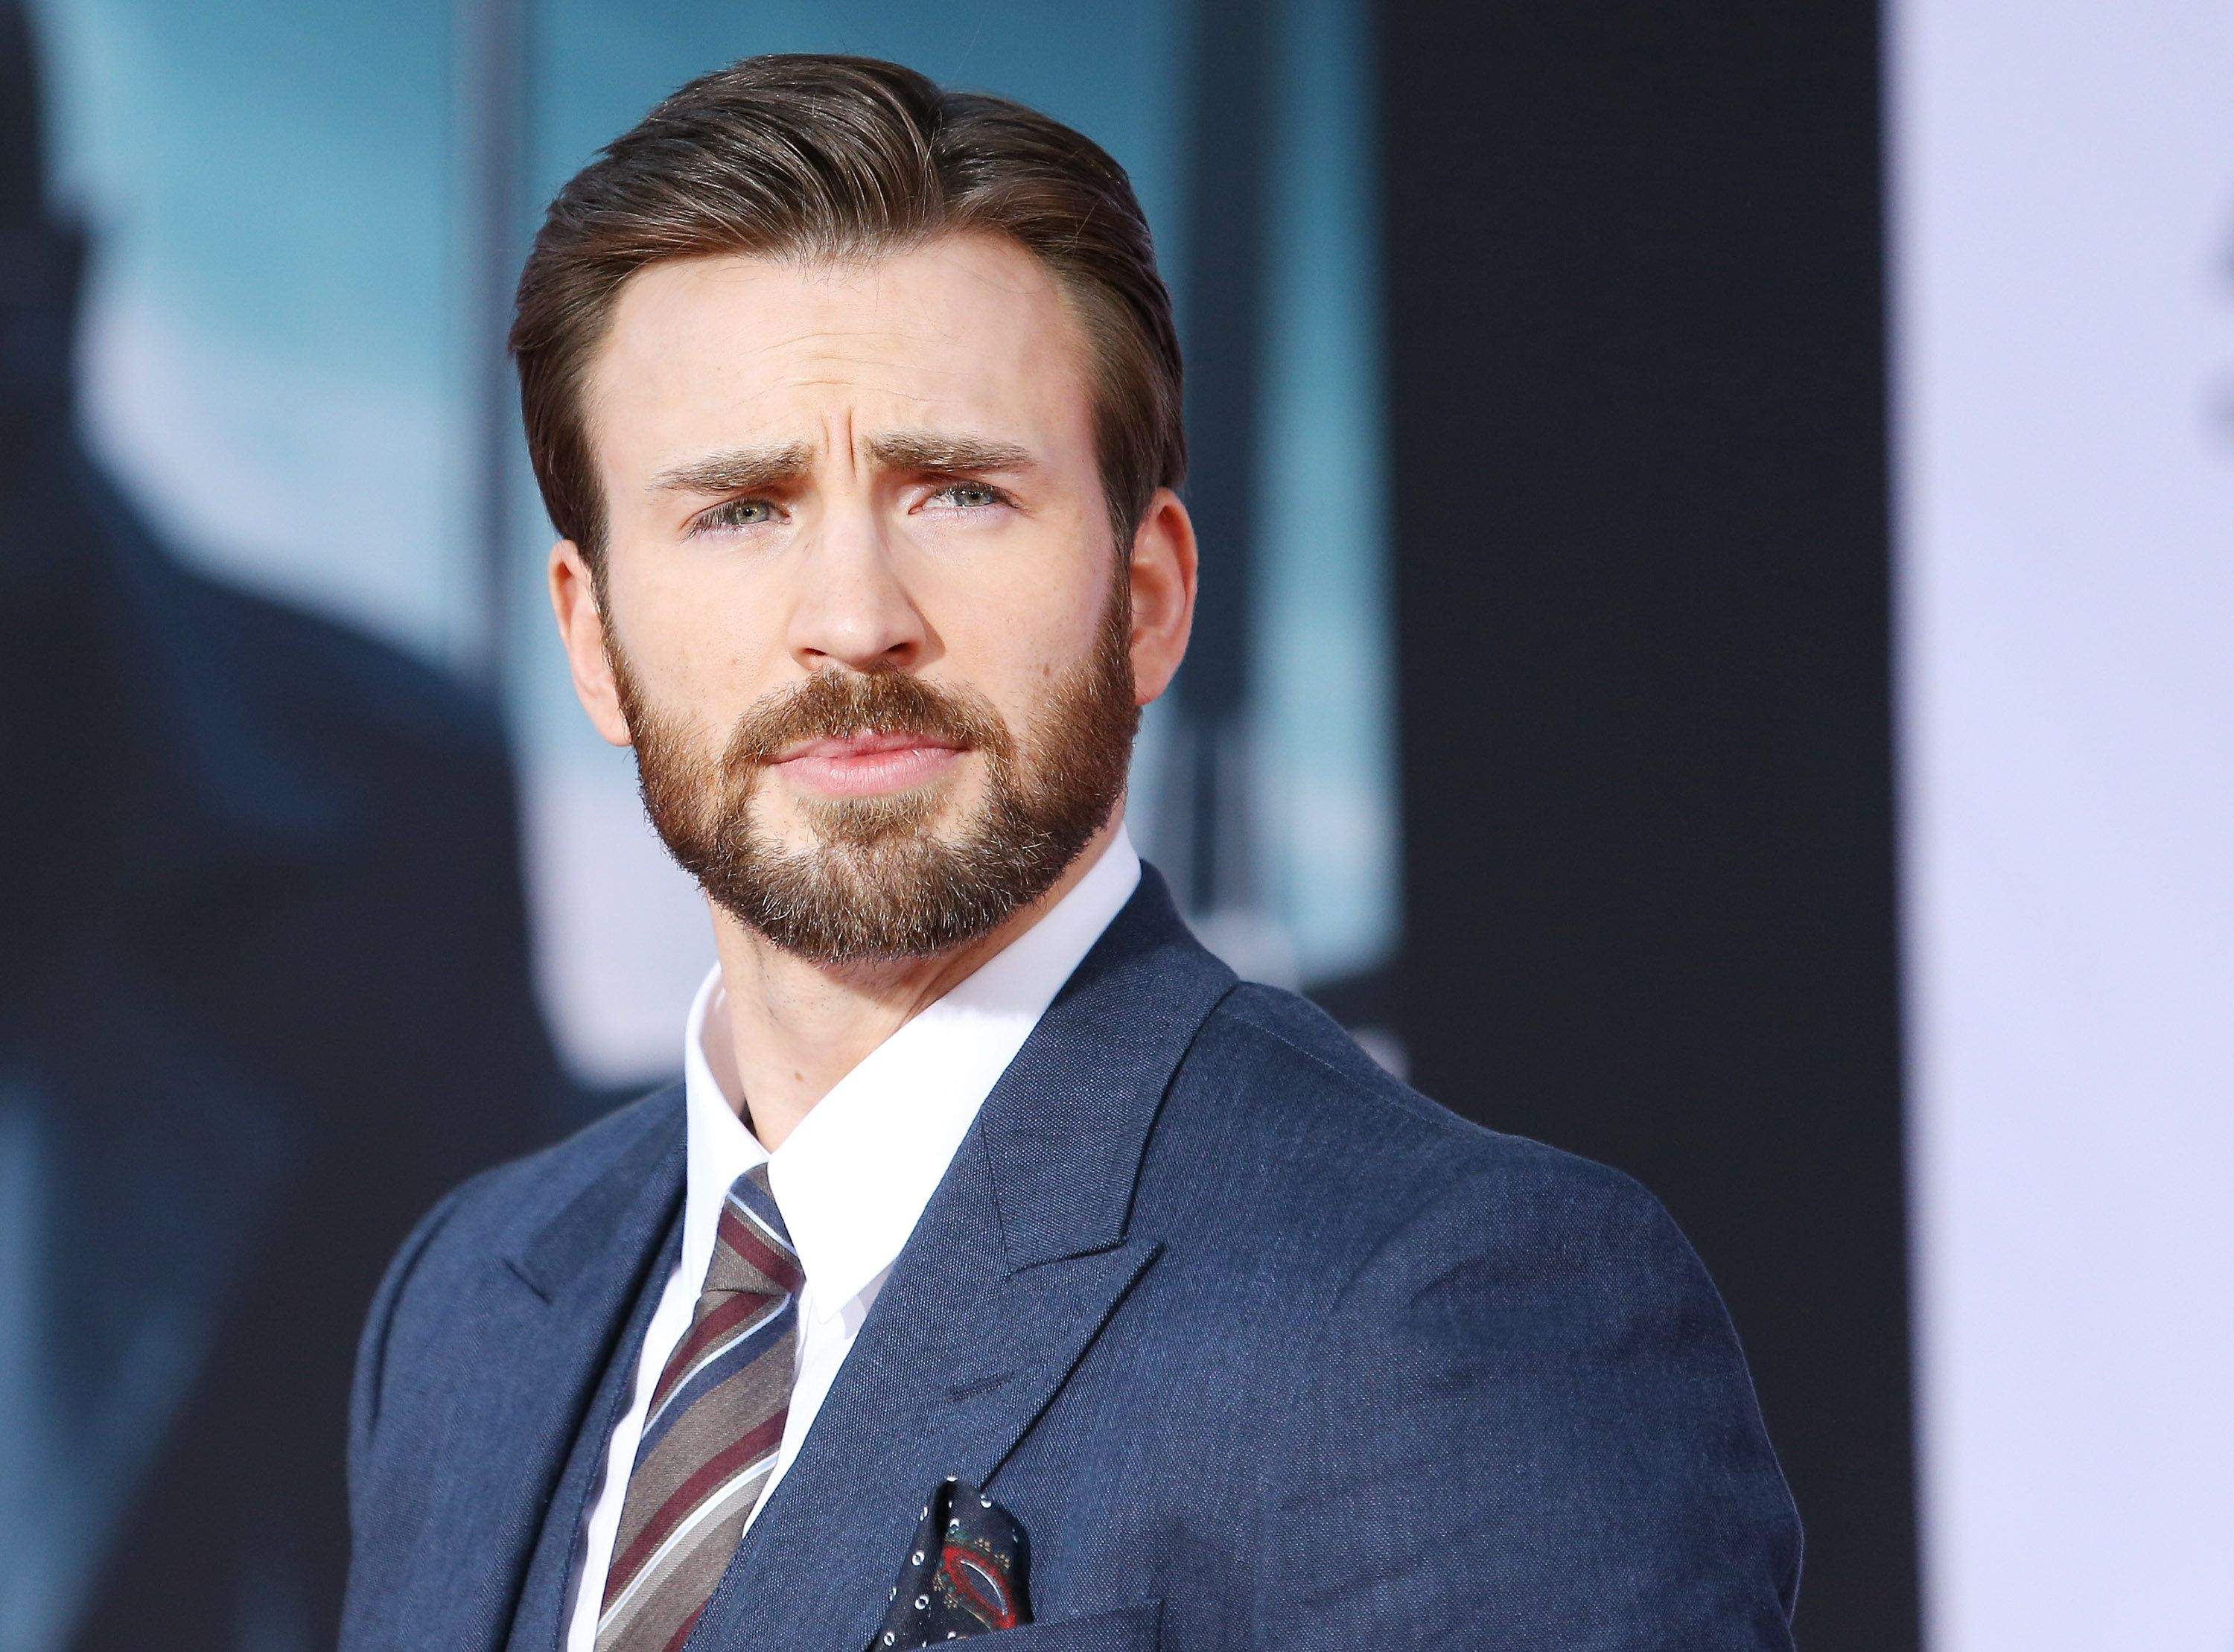 Chris Evans Might Be Playing the Dentist in Little Shop of Horrors